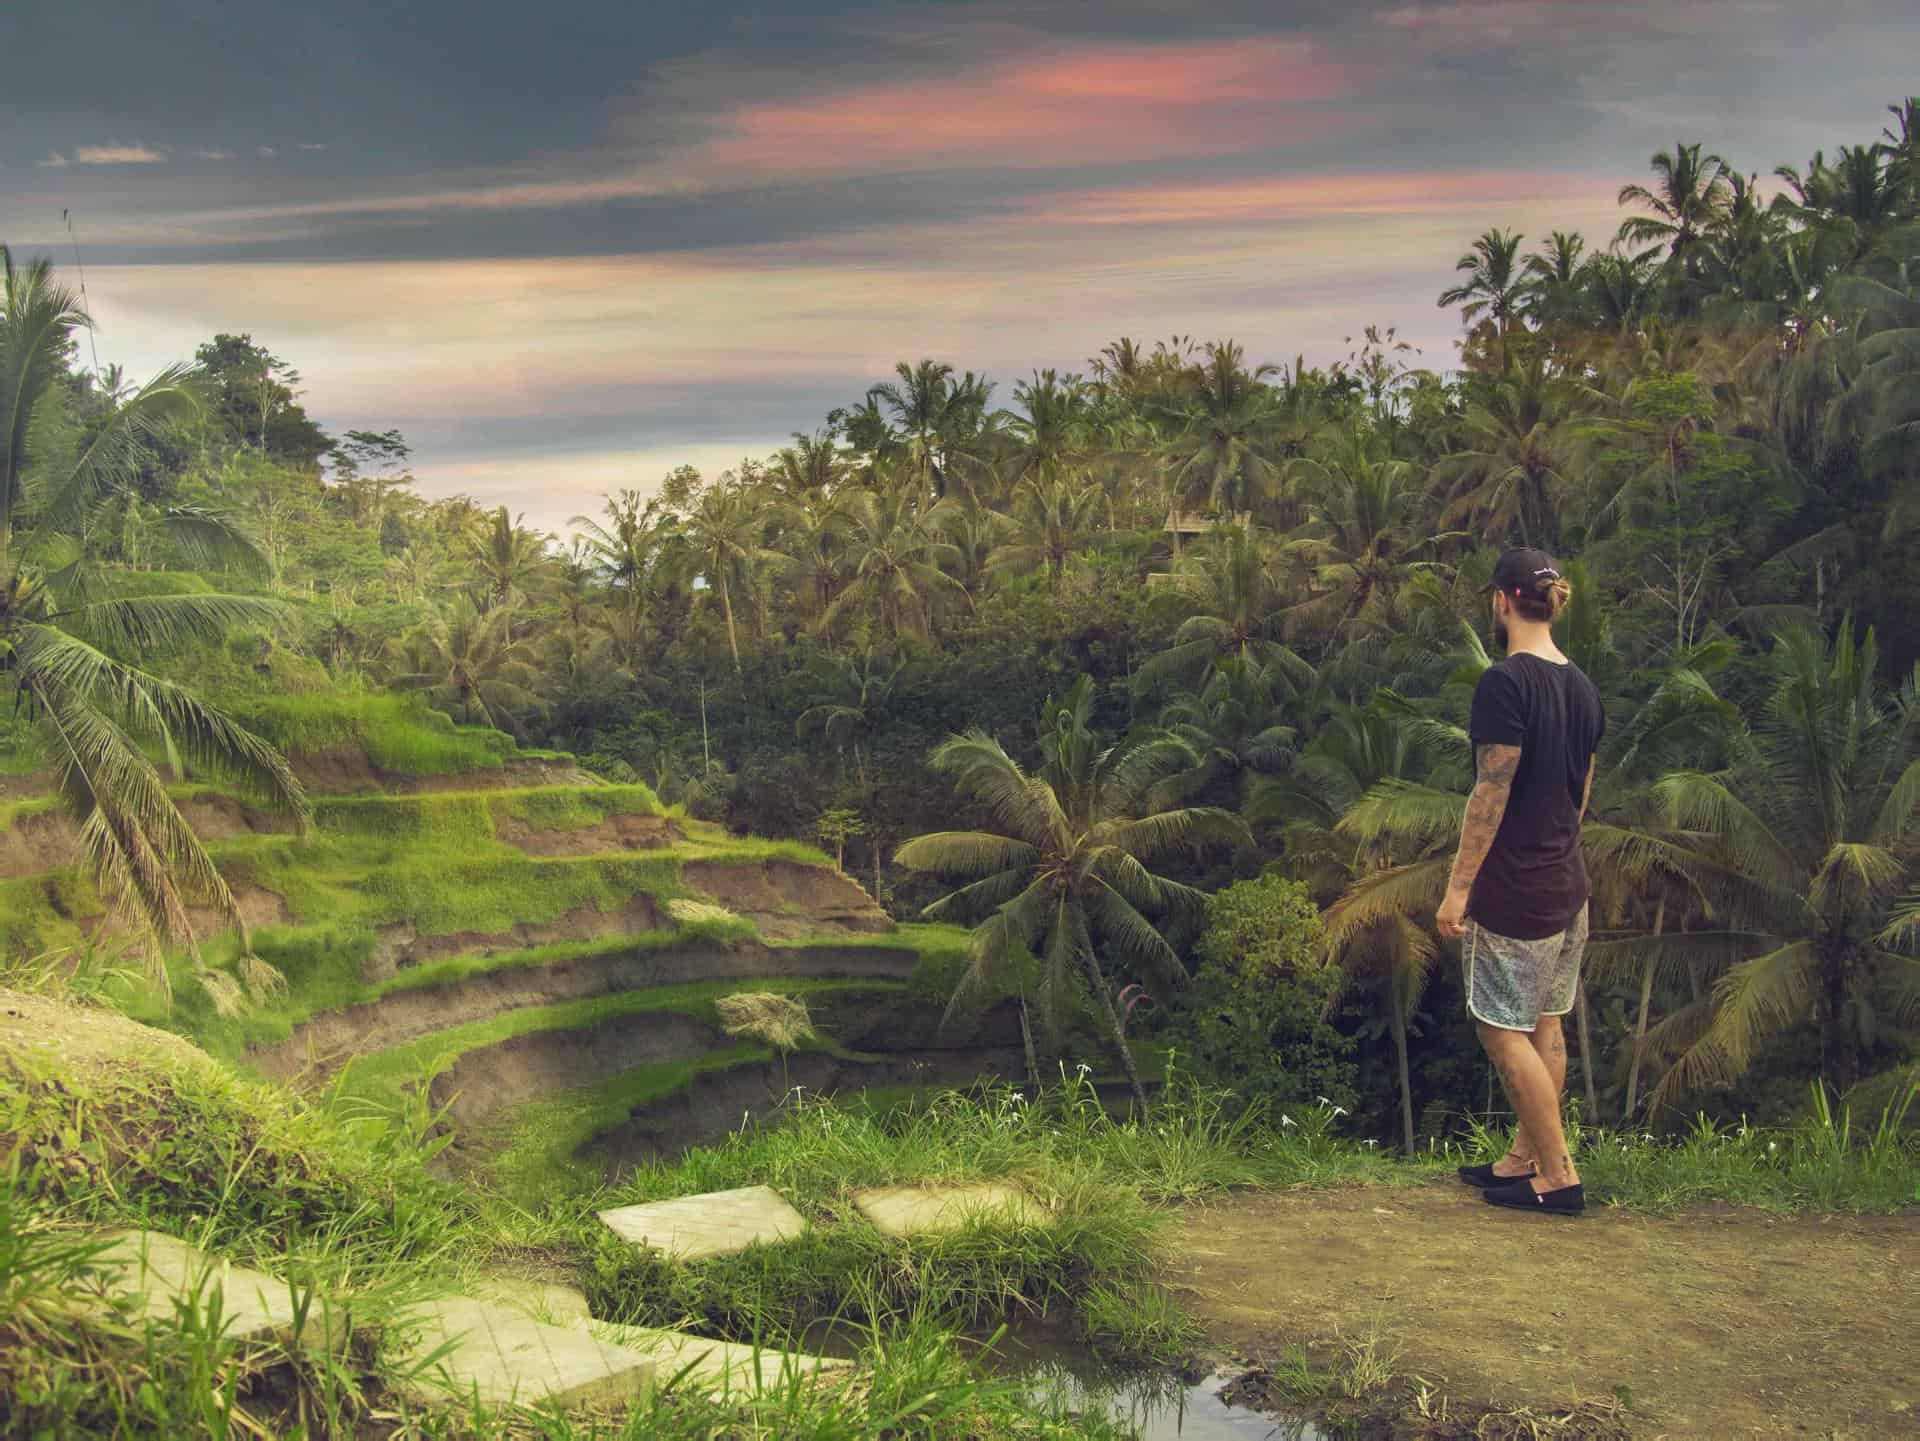 Man looks out over terraced fields